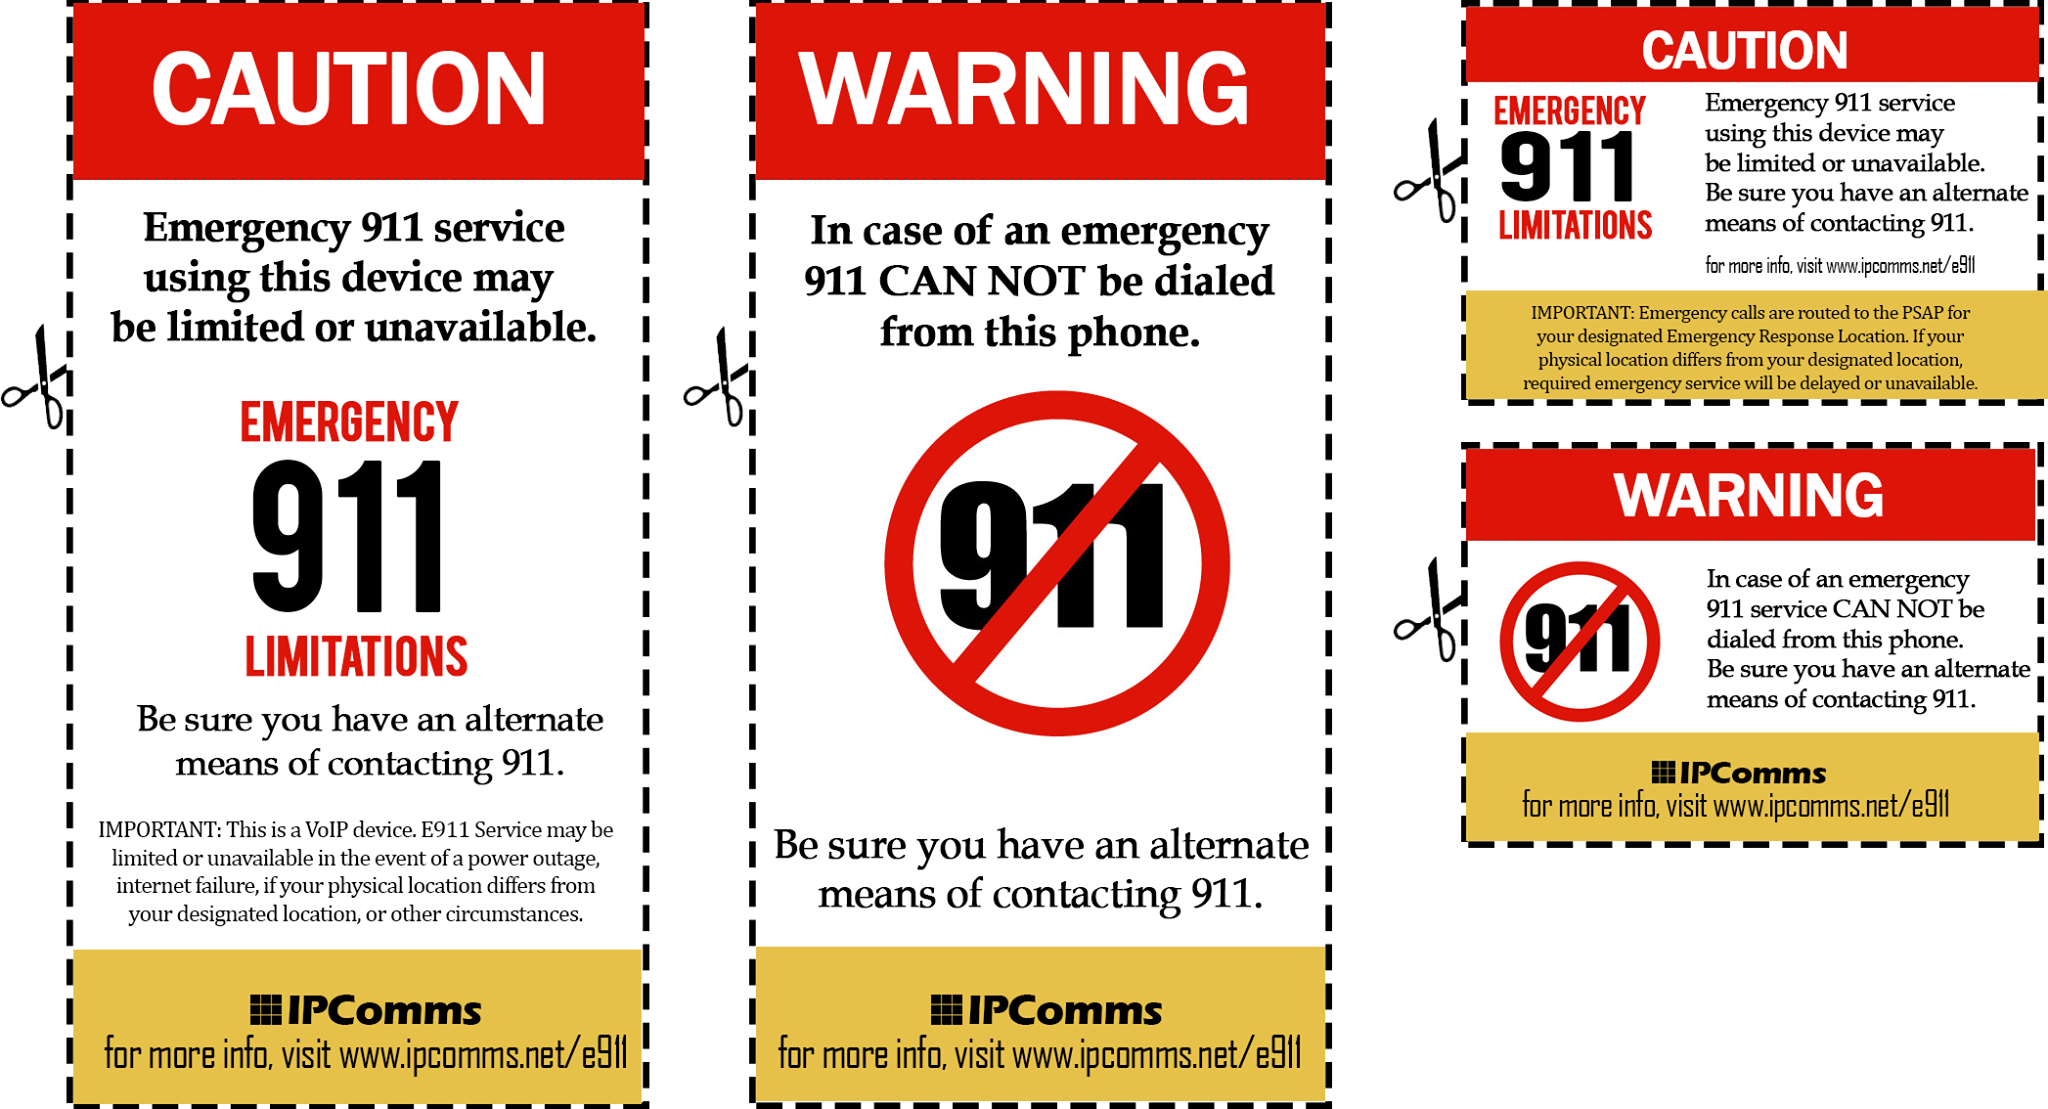 IPComms Emergency 911 Services